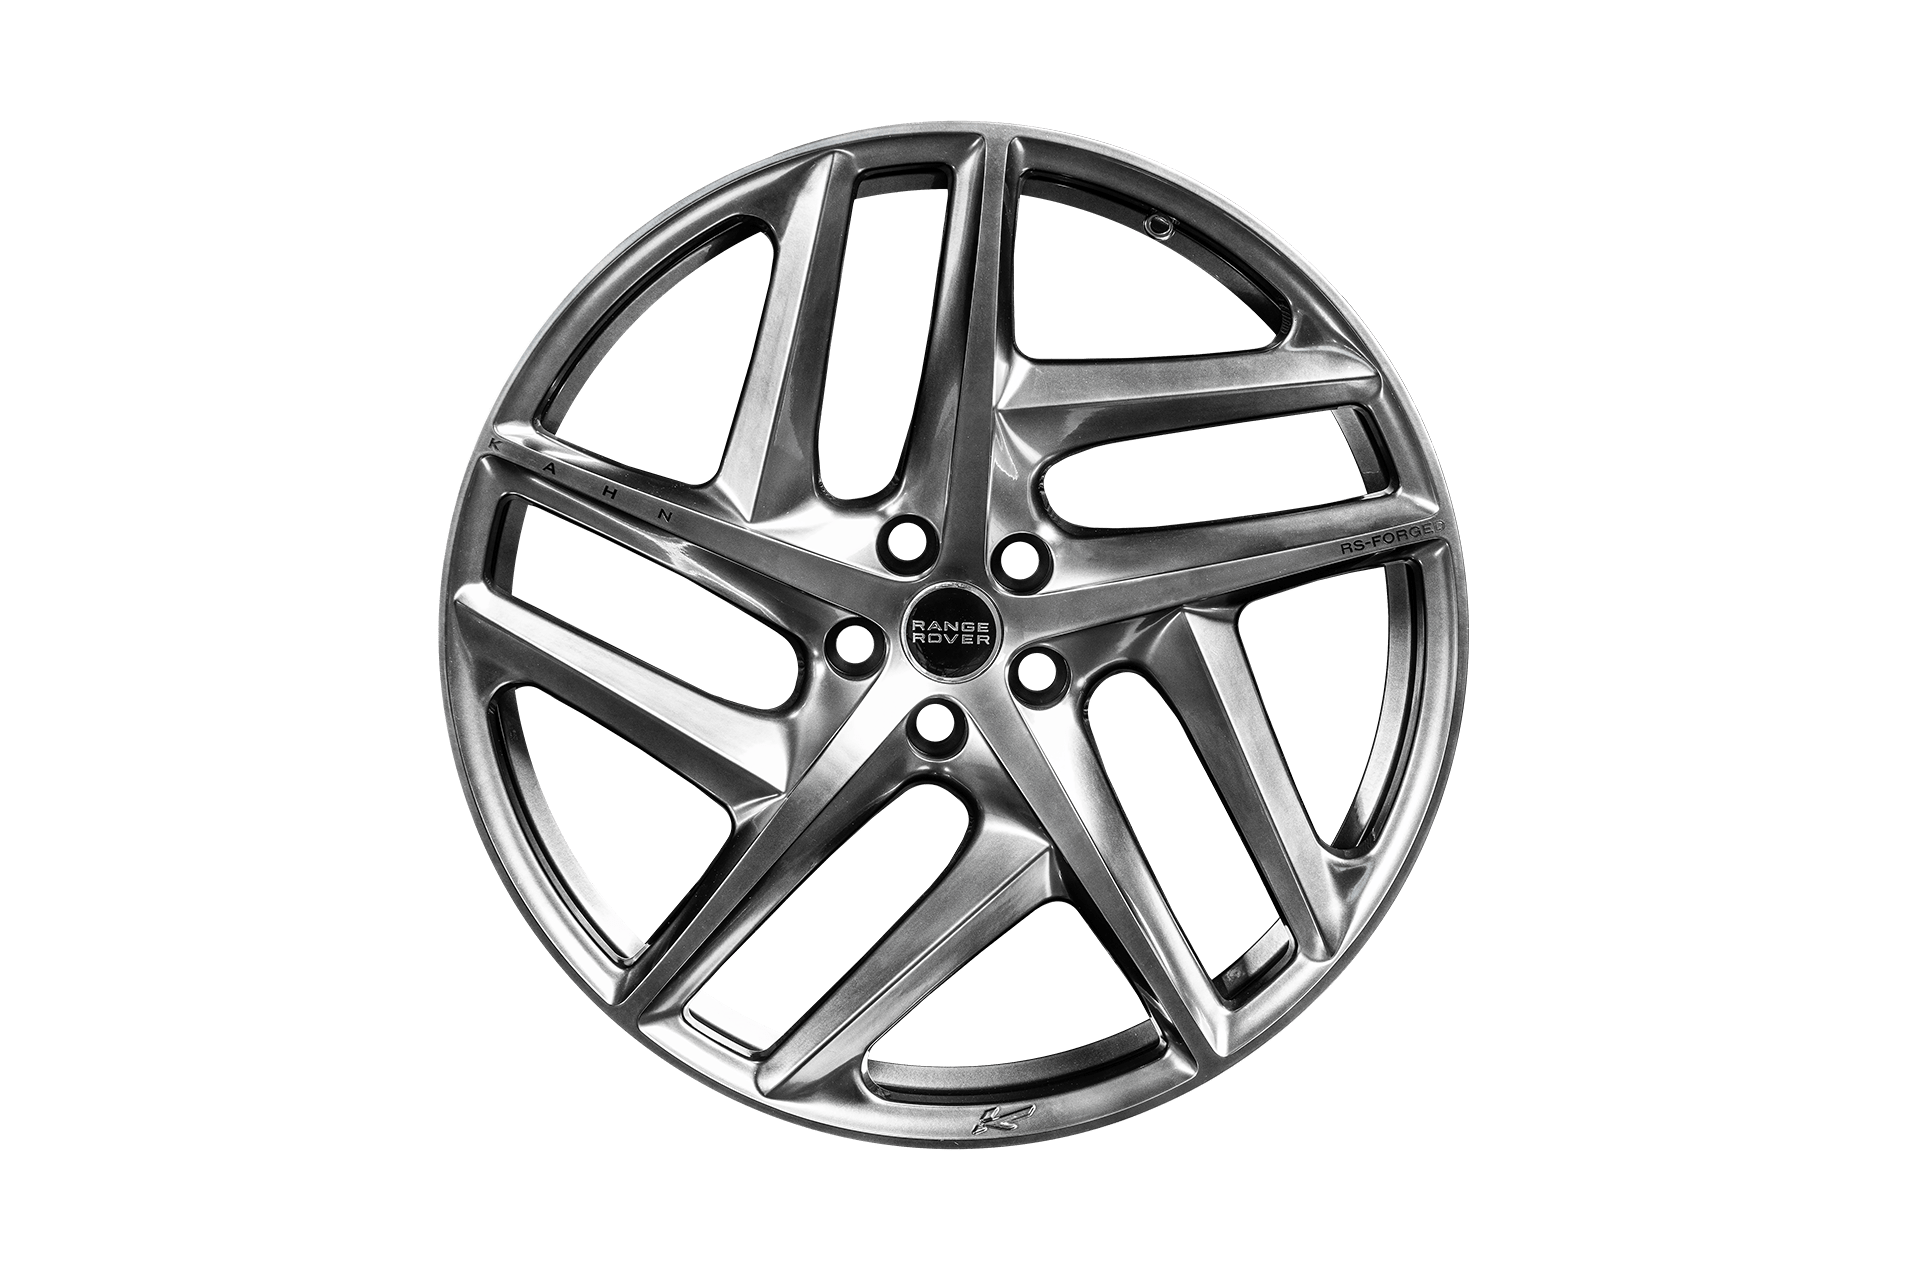 Land Rover Discovery (2017-PRESENT) Type 52 RS-Forged Alloy Wheels - Project Kahn